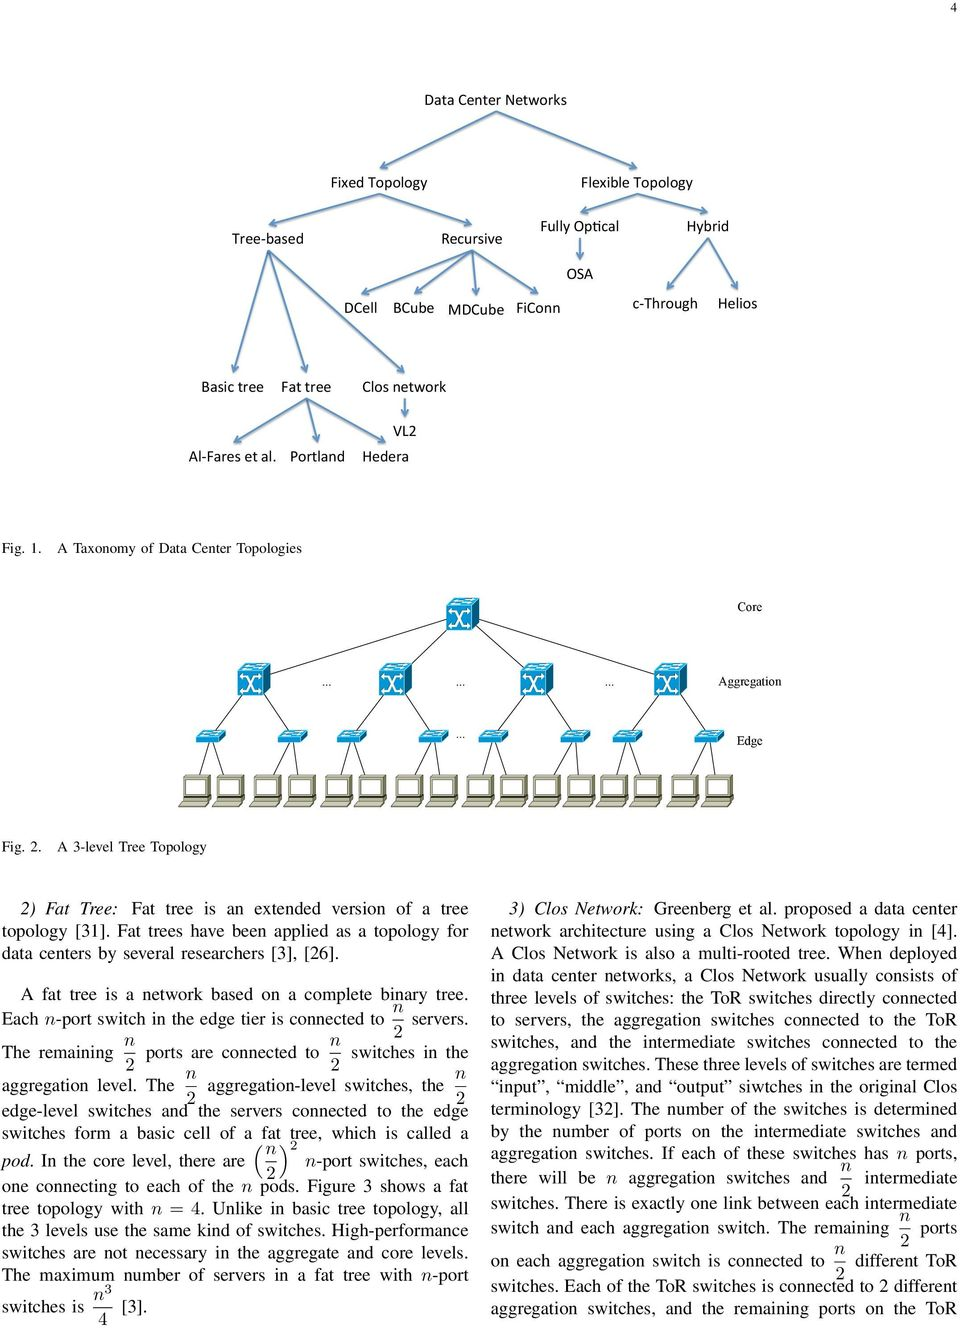 Fat trees have been applied as a topology for data centers by several researchers [3], [26]. A fat tree is a network based on a complete binary tree.